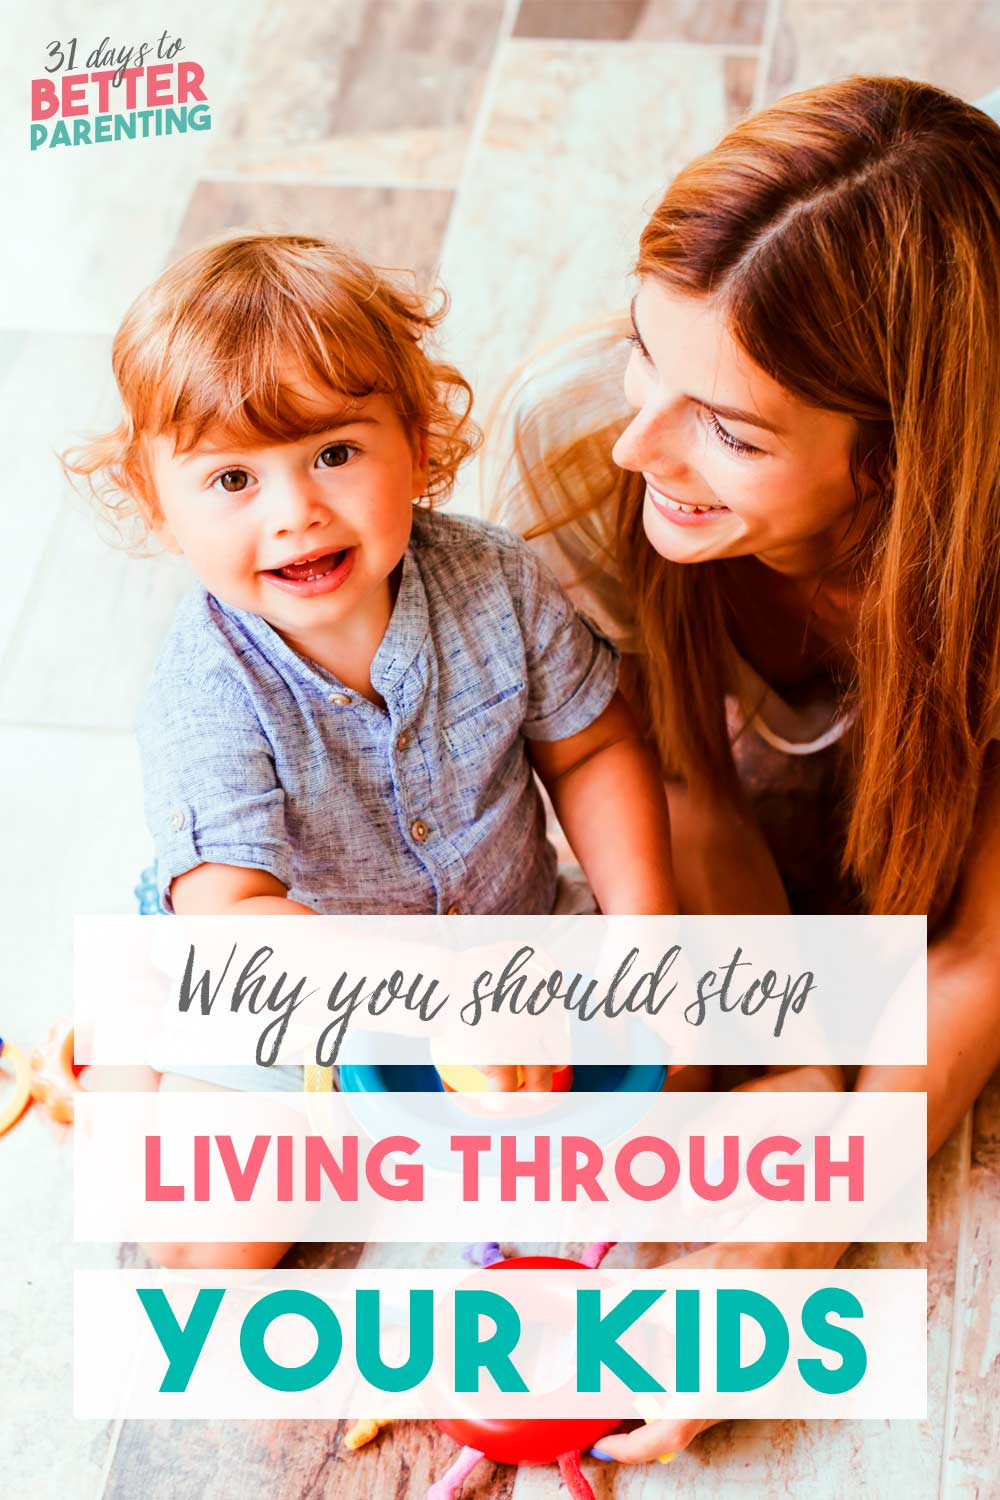 Are you living through your kids?